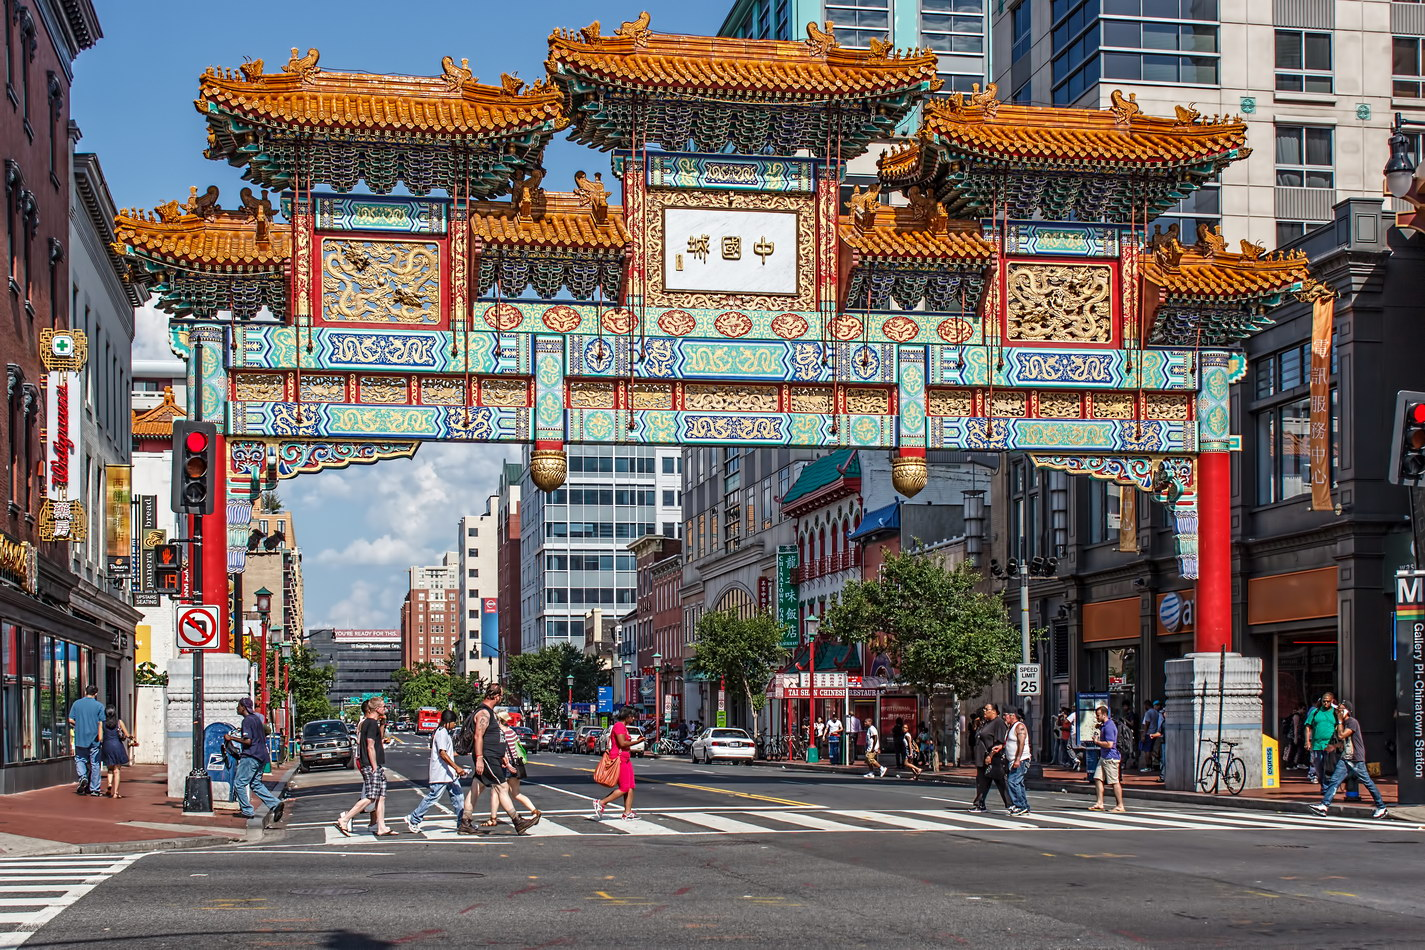 Washington D.C. Chinatown gate.